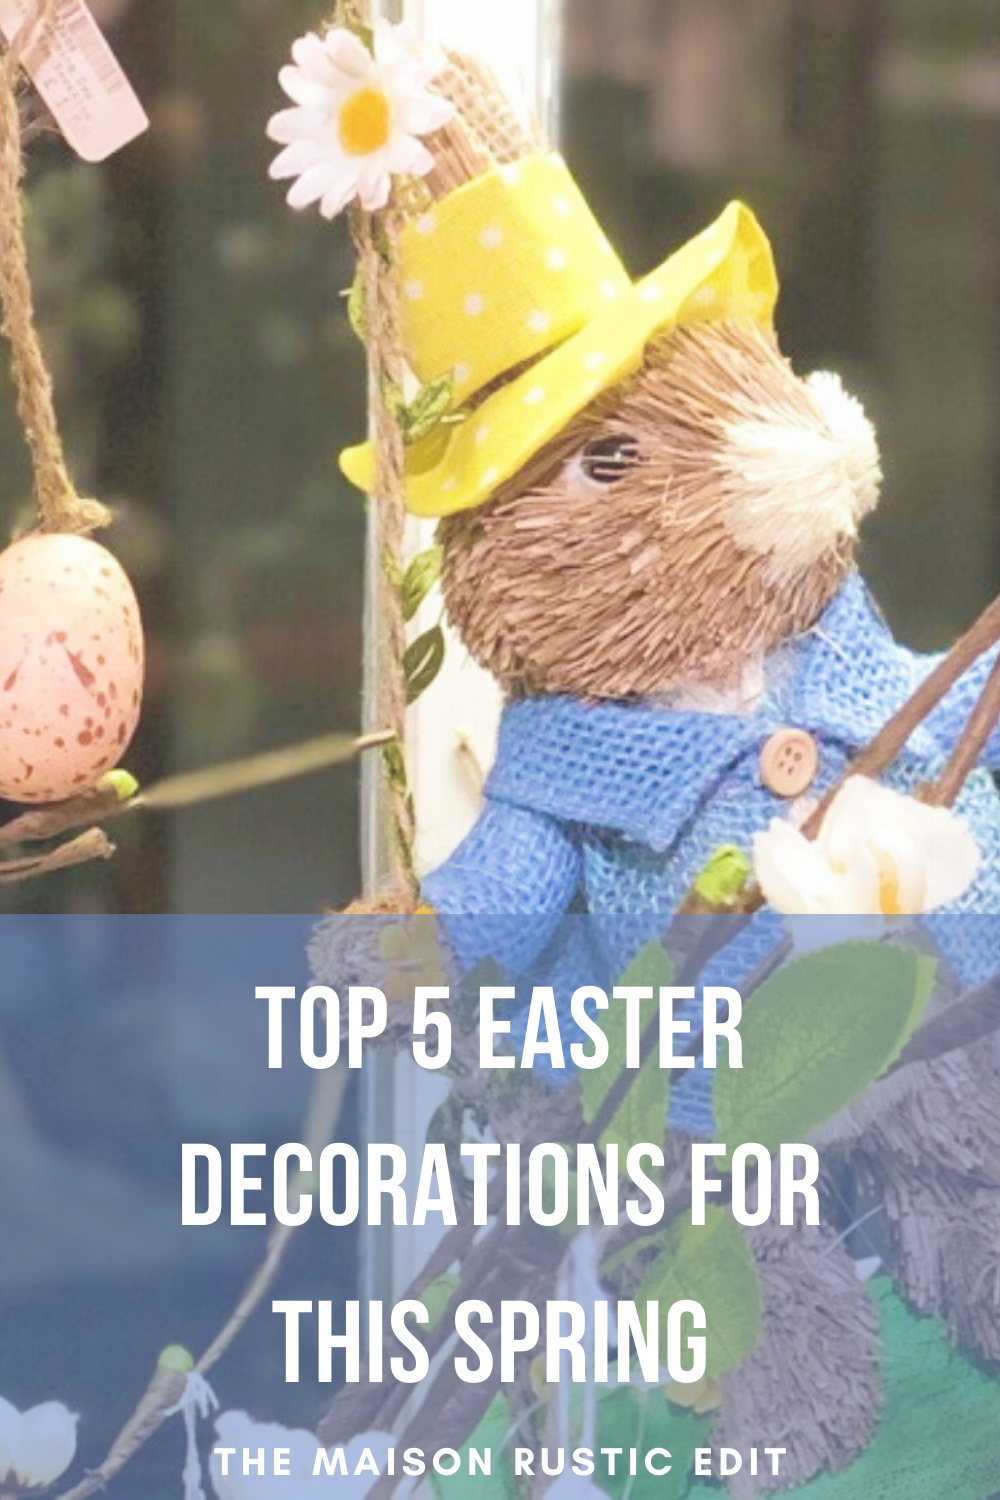 TOP 5 EASTER DECORATIONS FOR THIS SPRING